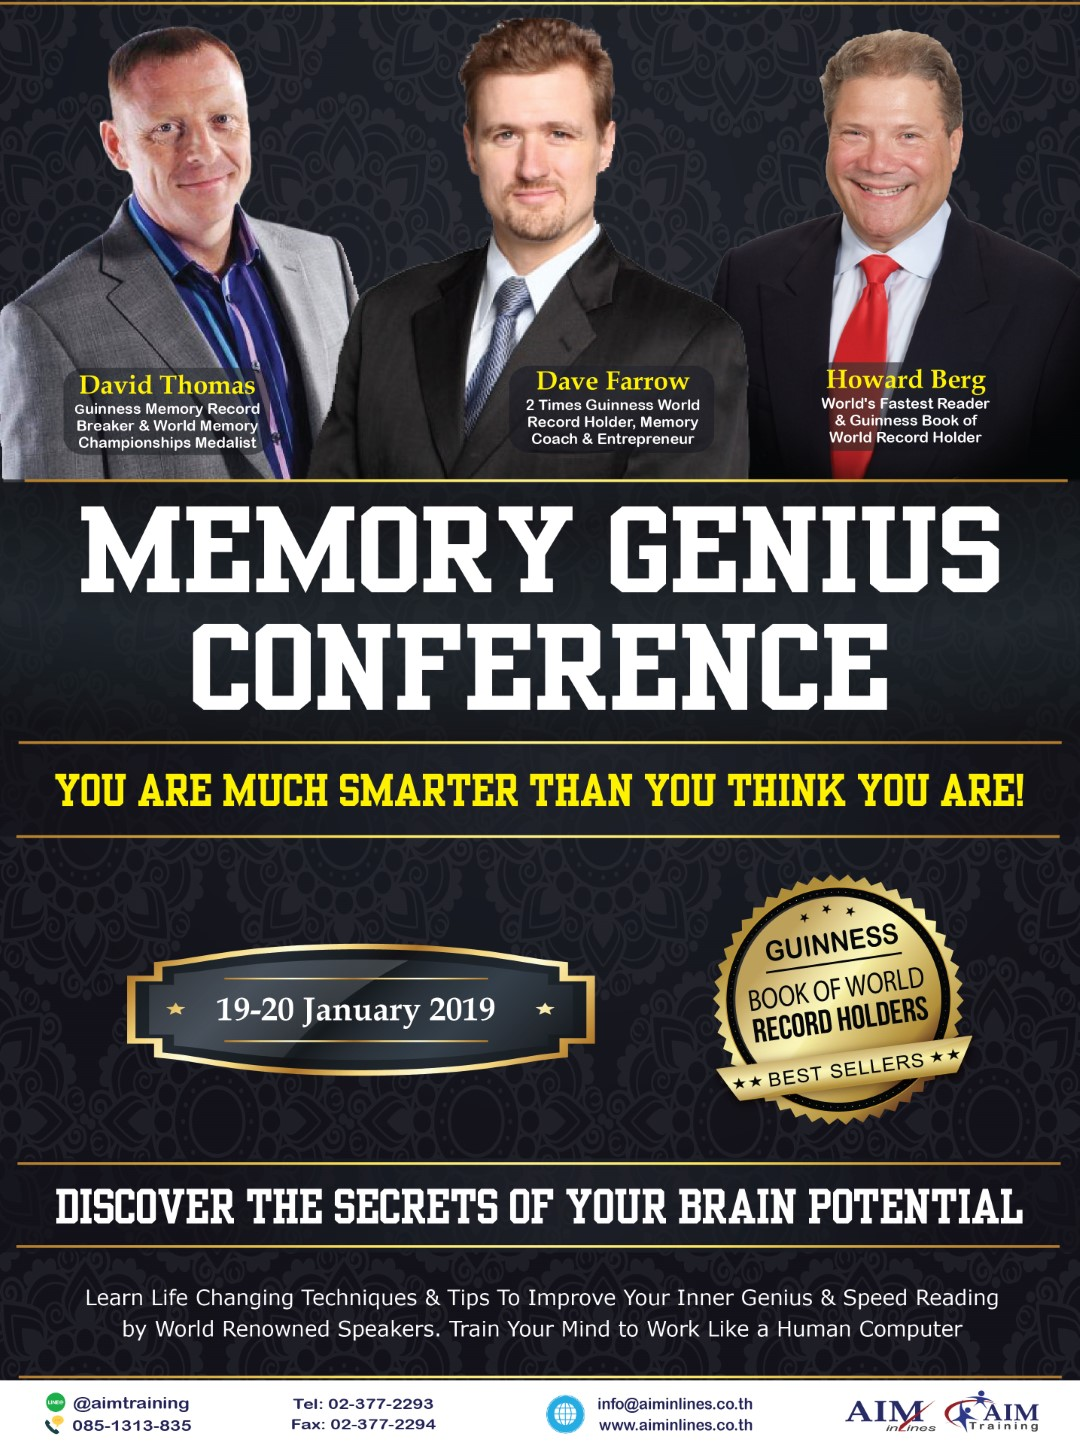 MGC - Memory Genius Conference Thailand 2019 by AIM inlines & AIM Training Co., Ltd.